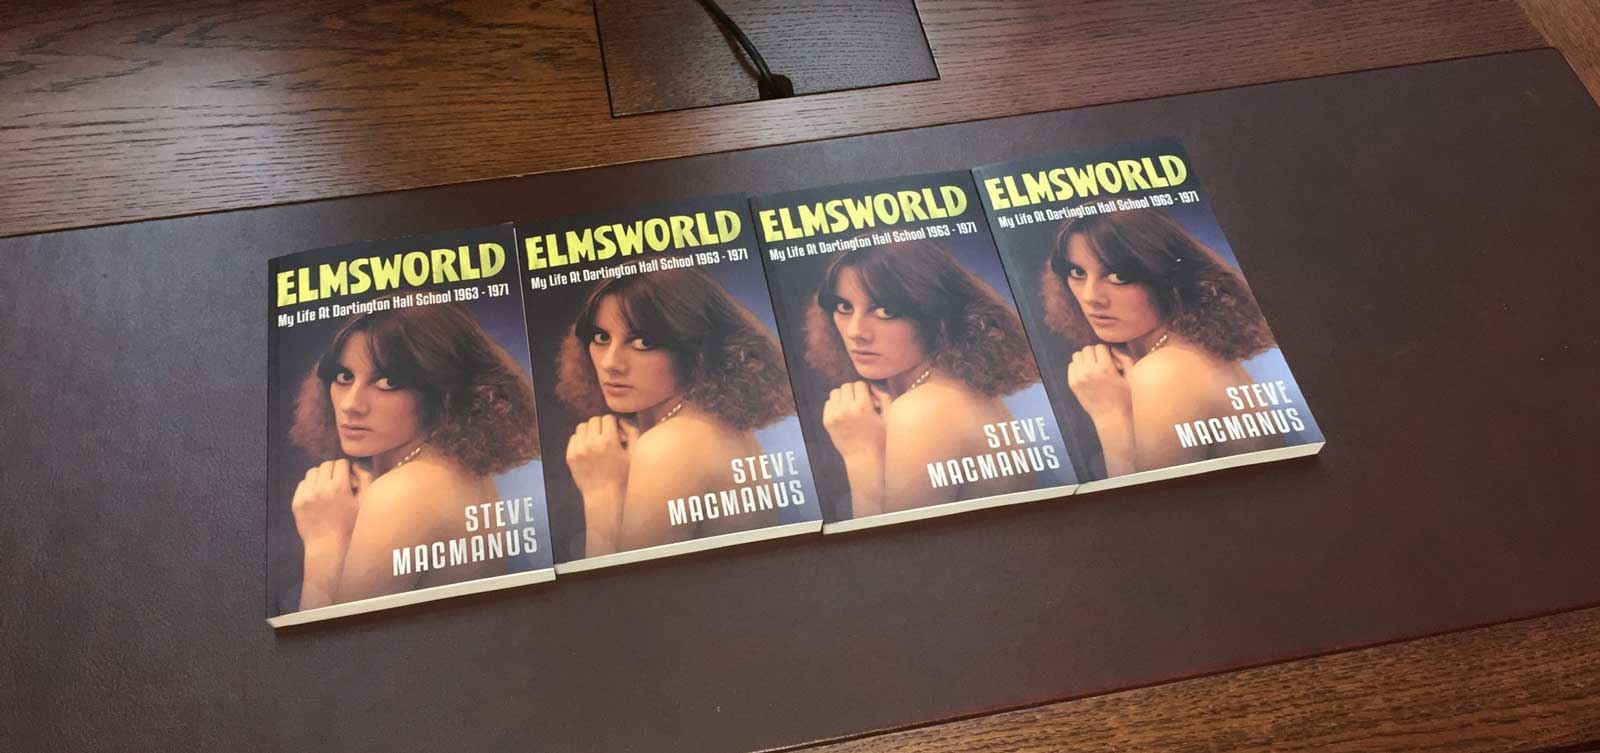 Elmsworld by Steve MacManus. Cover photo of Susan by Steve Cook. Font used by kind permission of Rian Hughes, book design by Ryan Gale